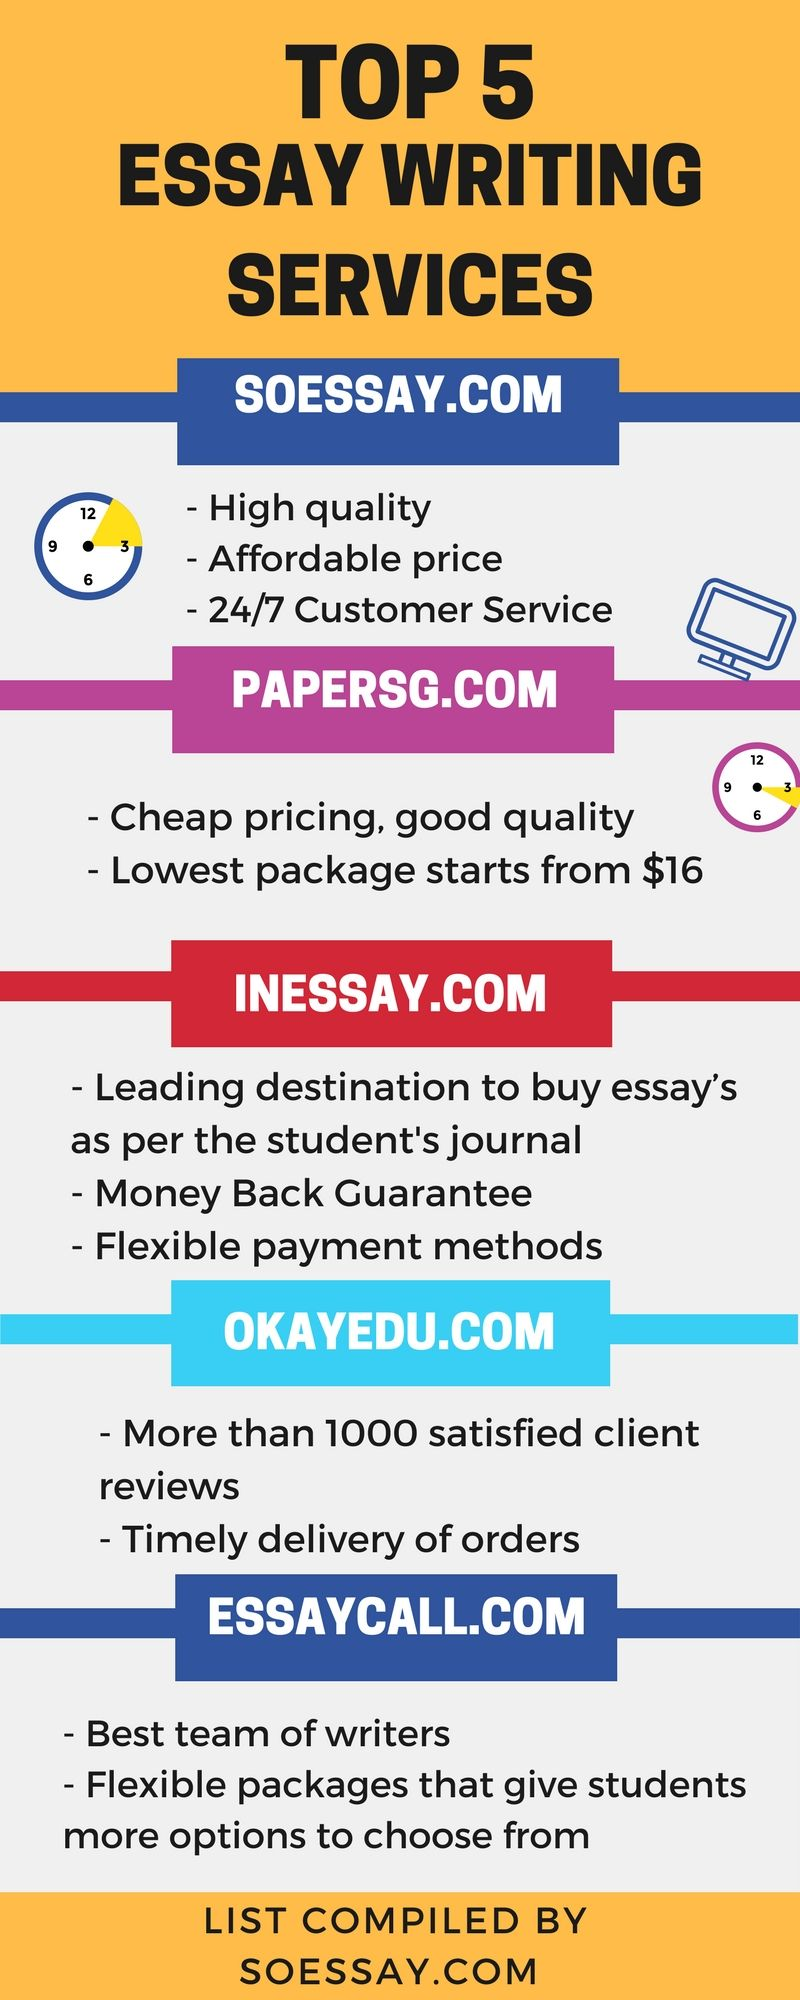 Top five online essay writing services in the world